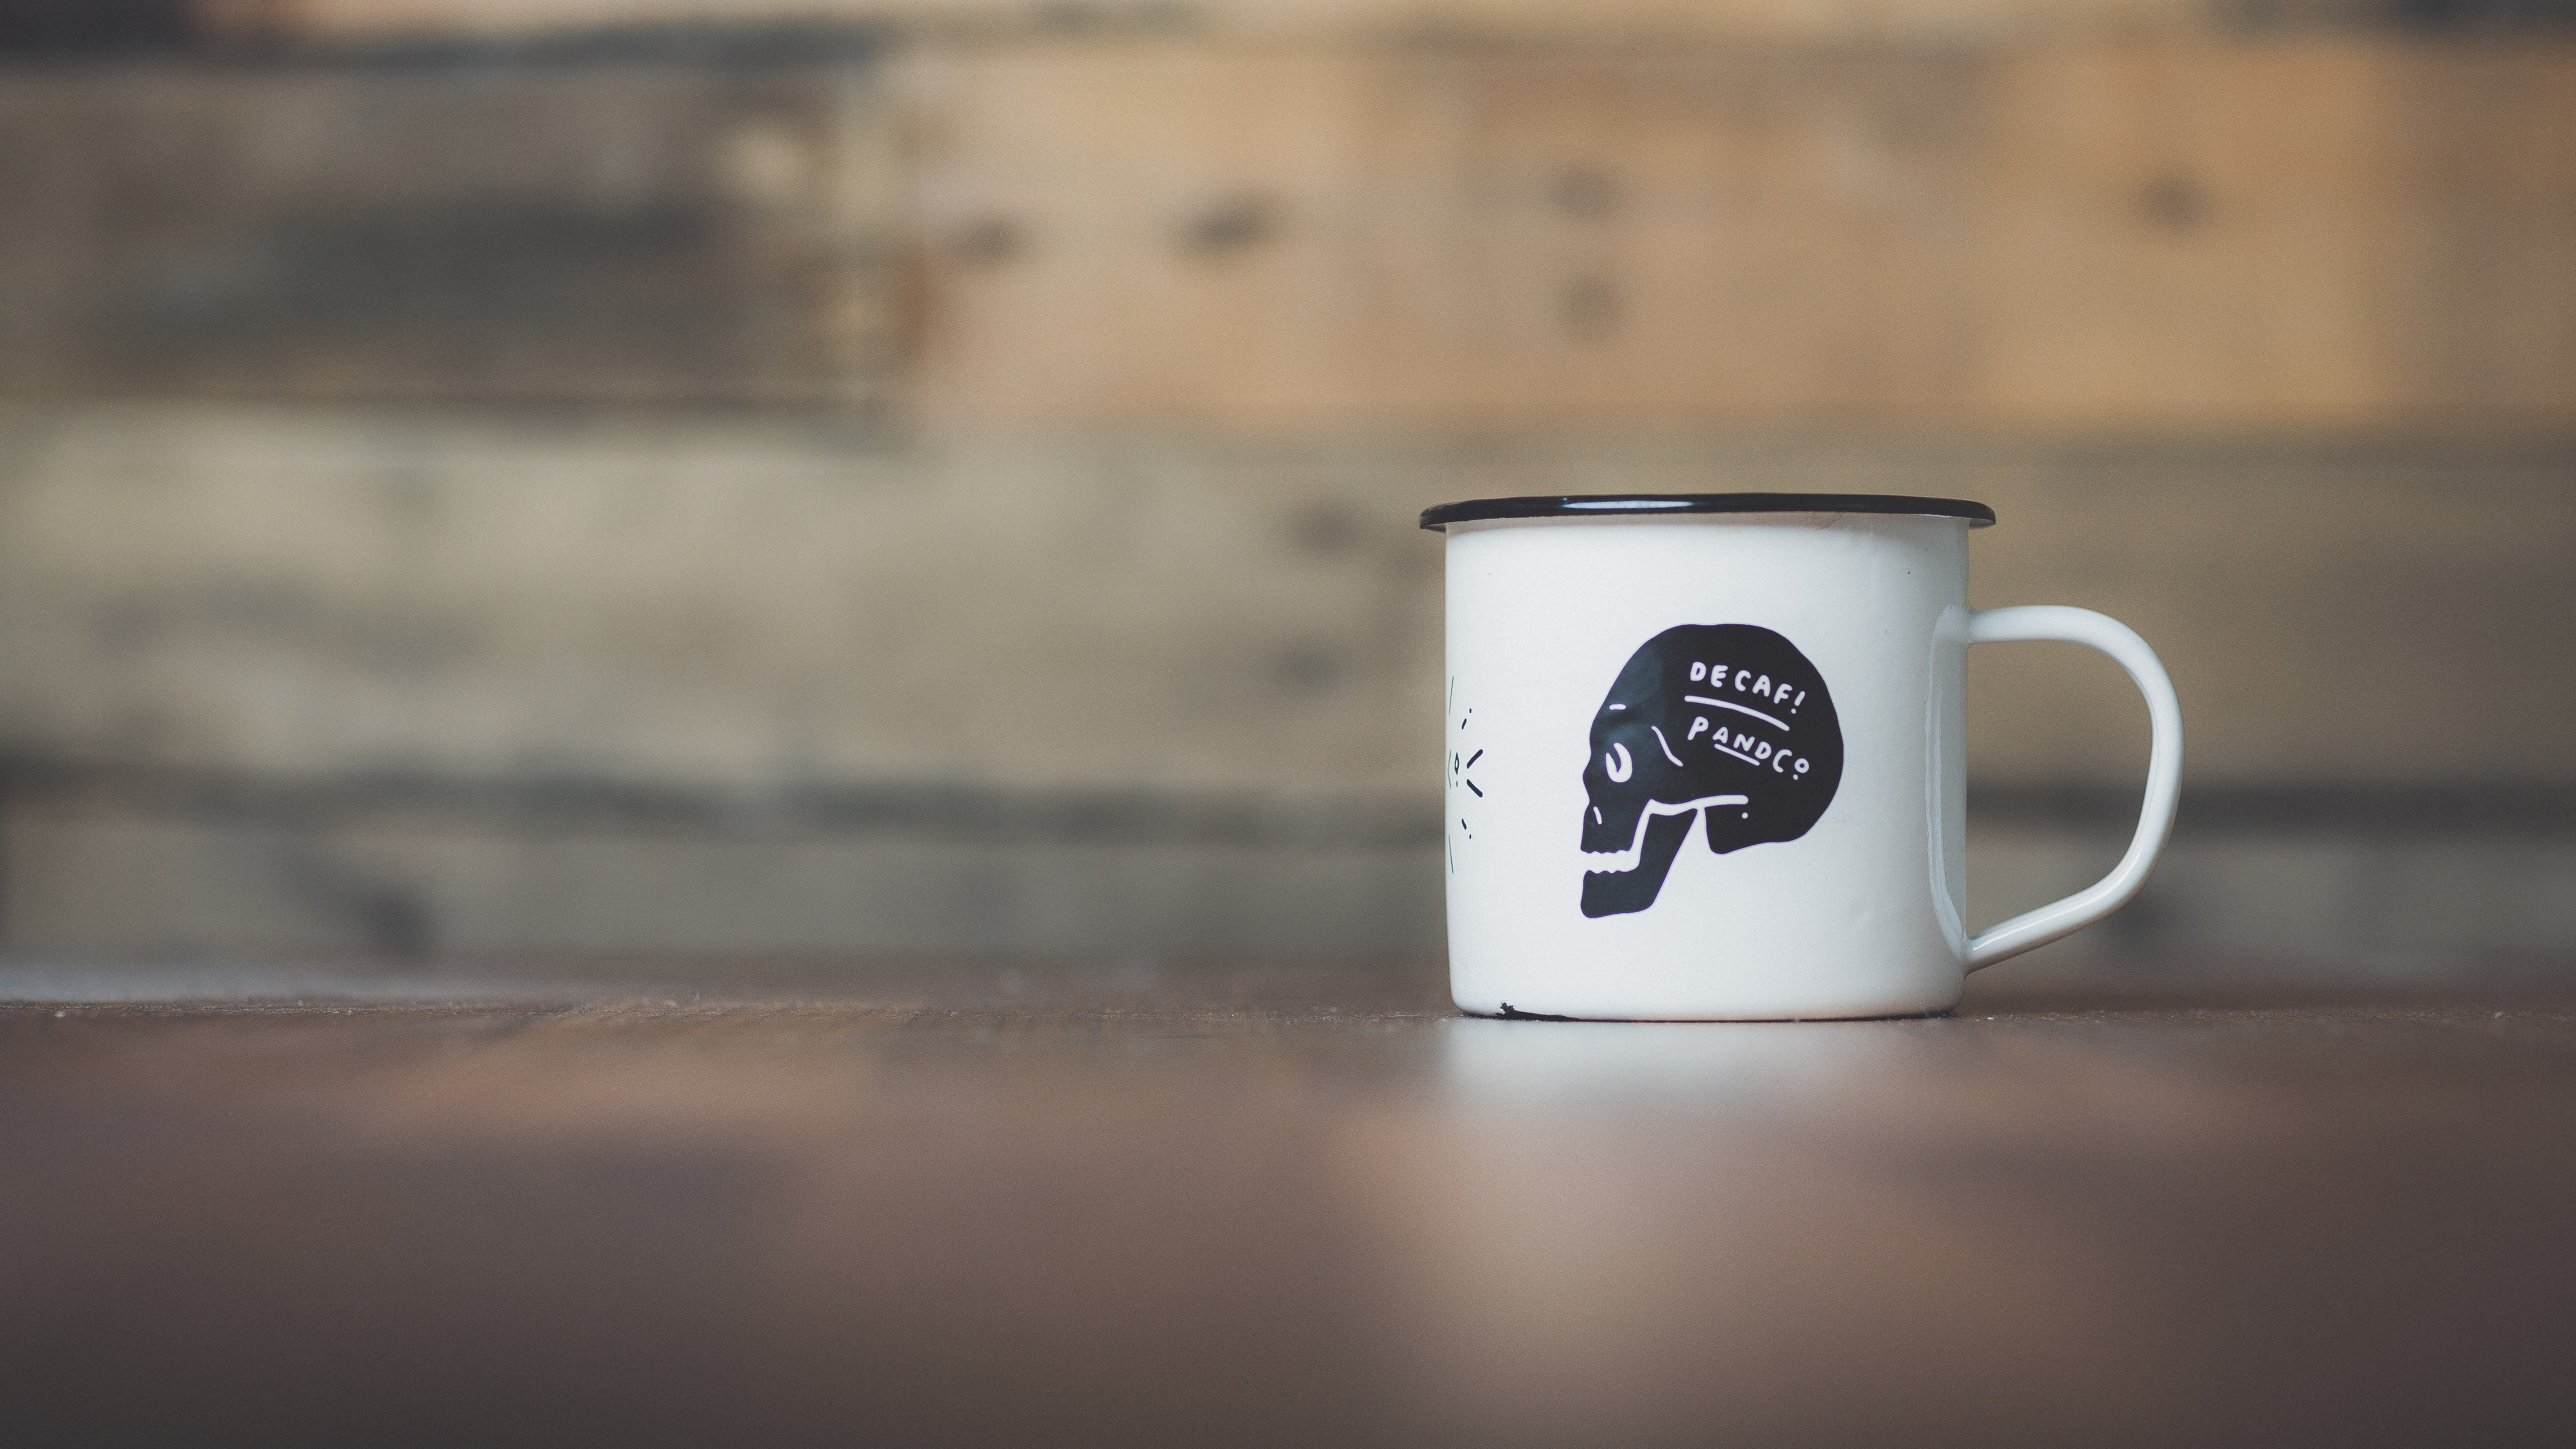 Tin white mug with black skull reading Decaf on it in front of wooden background